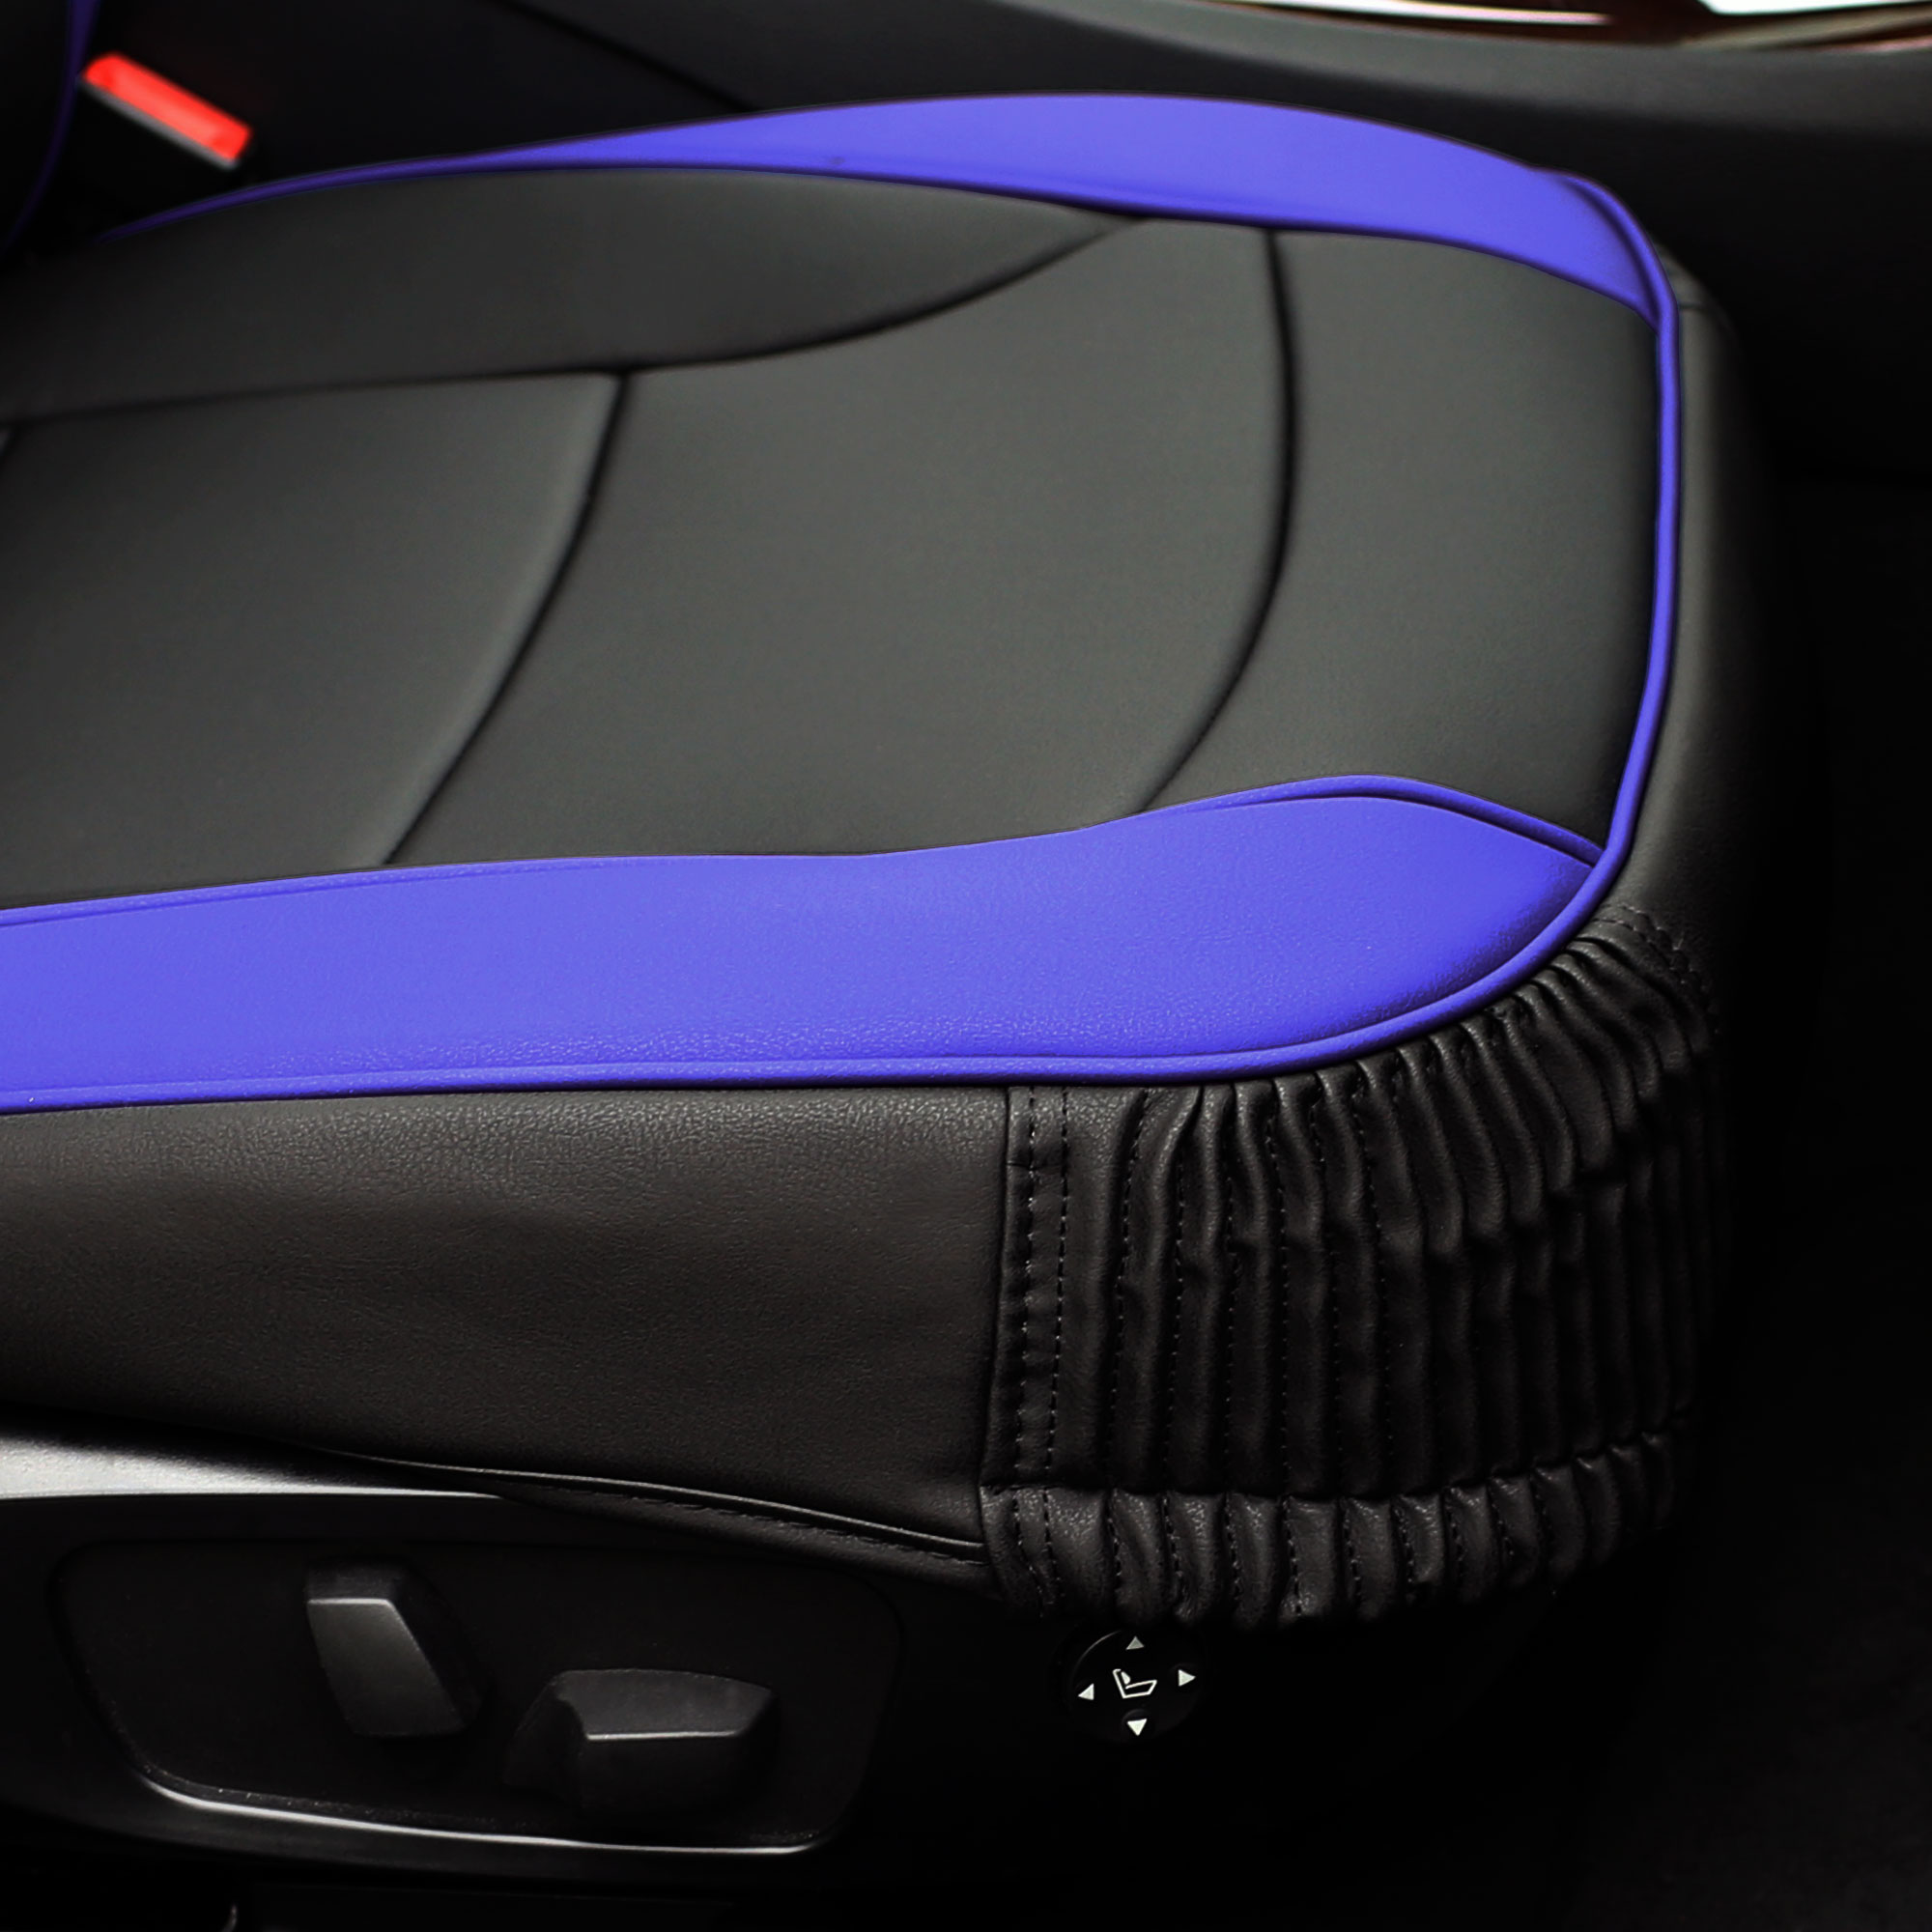 Luxury-Leather-Seat-Cushion-Covers-Front-Bucket-Pair-11-Color-Options thumbnail 21